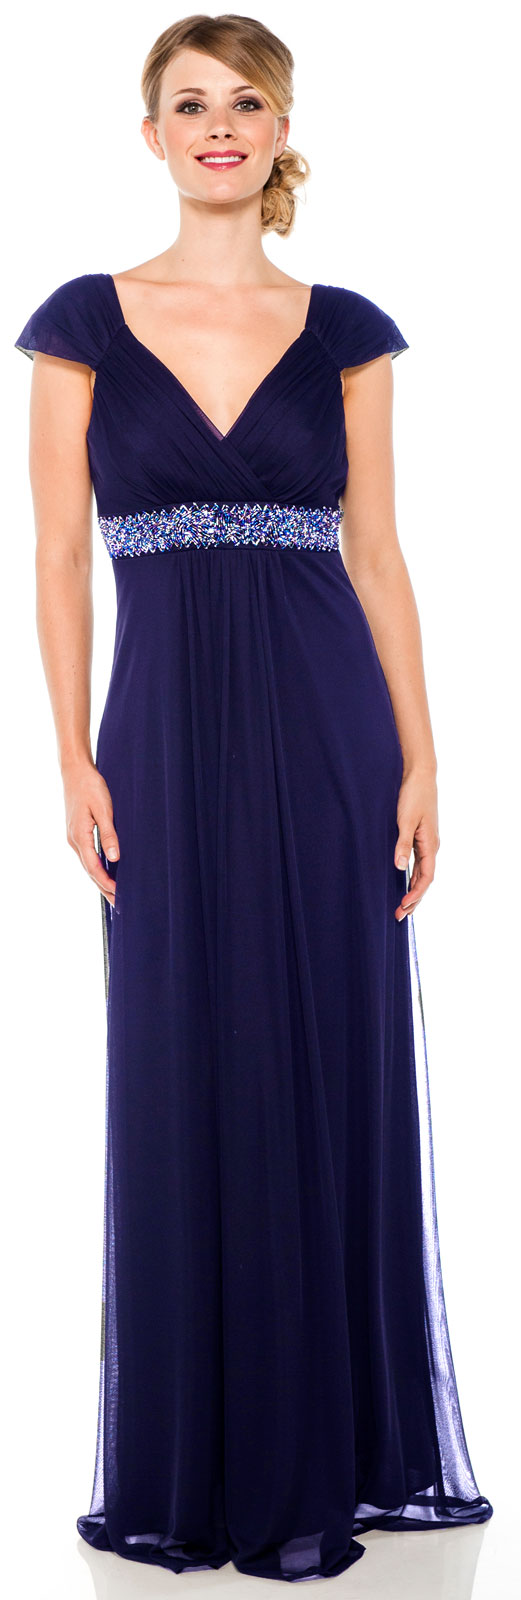 Mom cap sleeved long formal dress with beaded trim under the